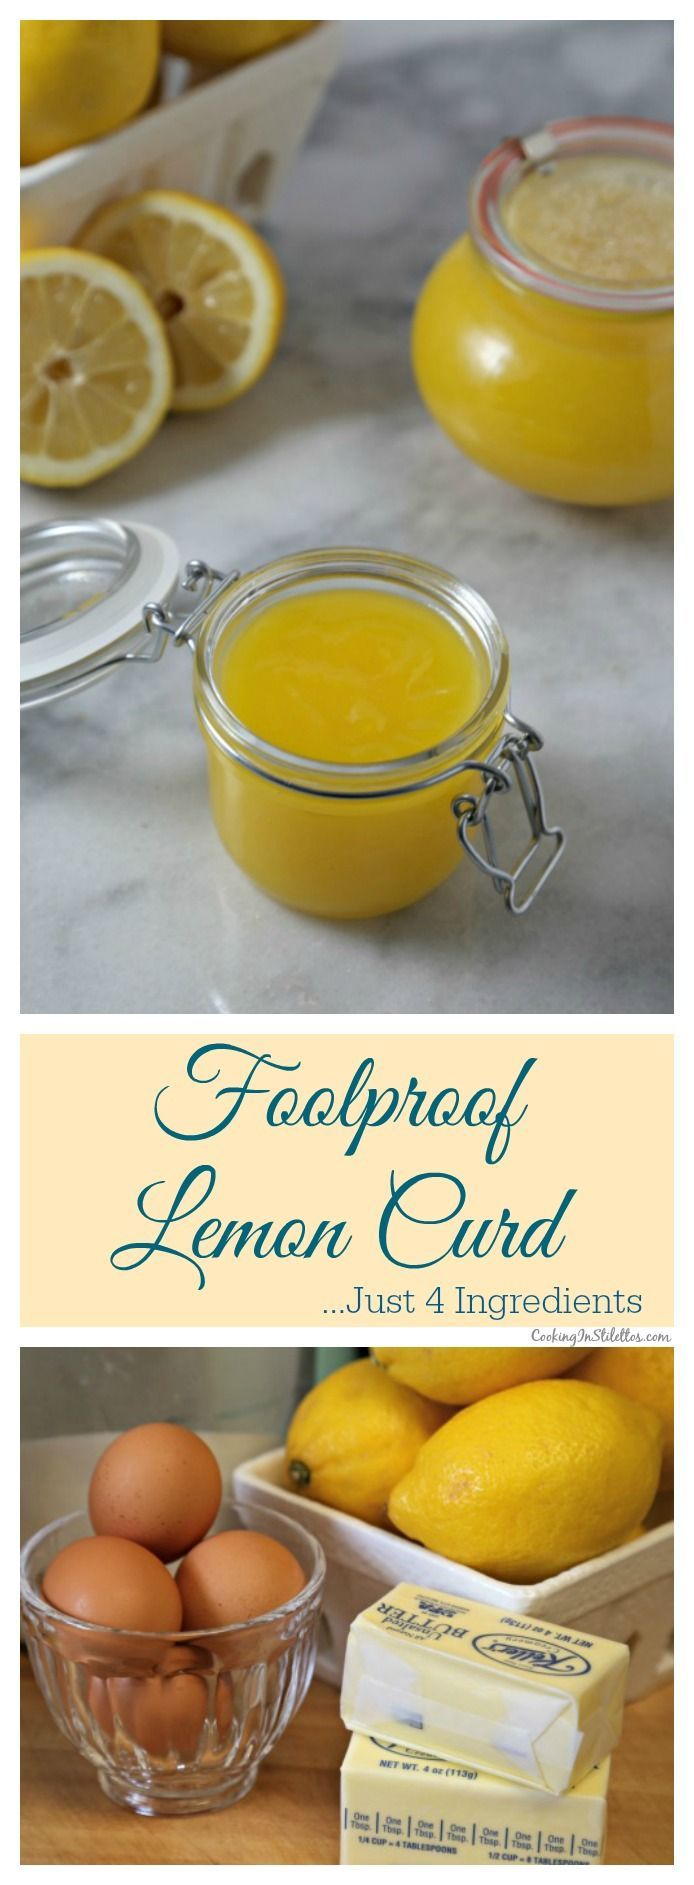 This Foolproof Homemade Lemon Curd from CookingInStilettos.com is made from scratch with just 4 ingredients. This silky luscious lemon curd is delicious spread on scones, swirled into yogurt, added to cupcakes or even by the spoonful straight from the jar.  Homemade Lemon Curd | Pantry Staple | Fruit Curd | Easy Dessert | Lemon | Meyer Lemon | How To Make Curd | Foolproof Recipe via @CookInStilettos